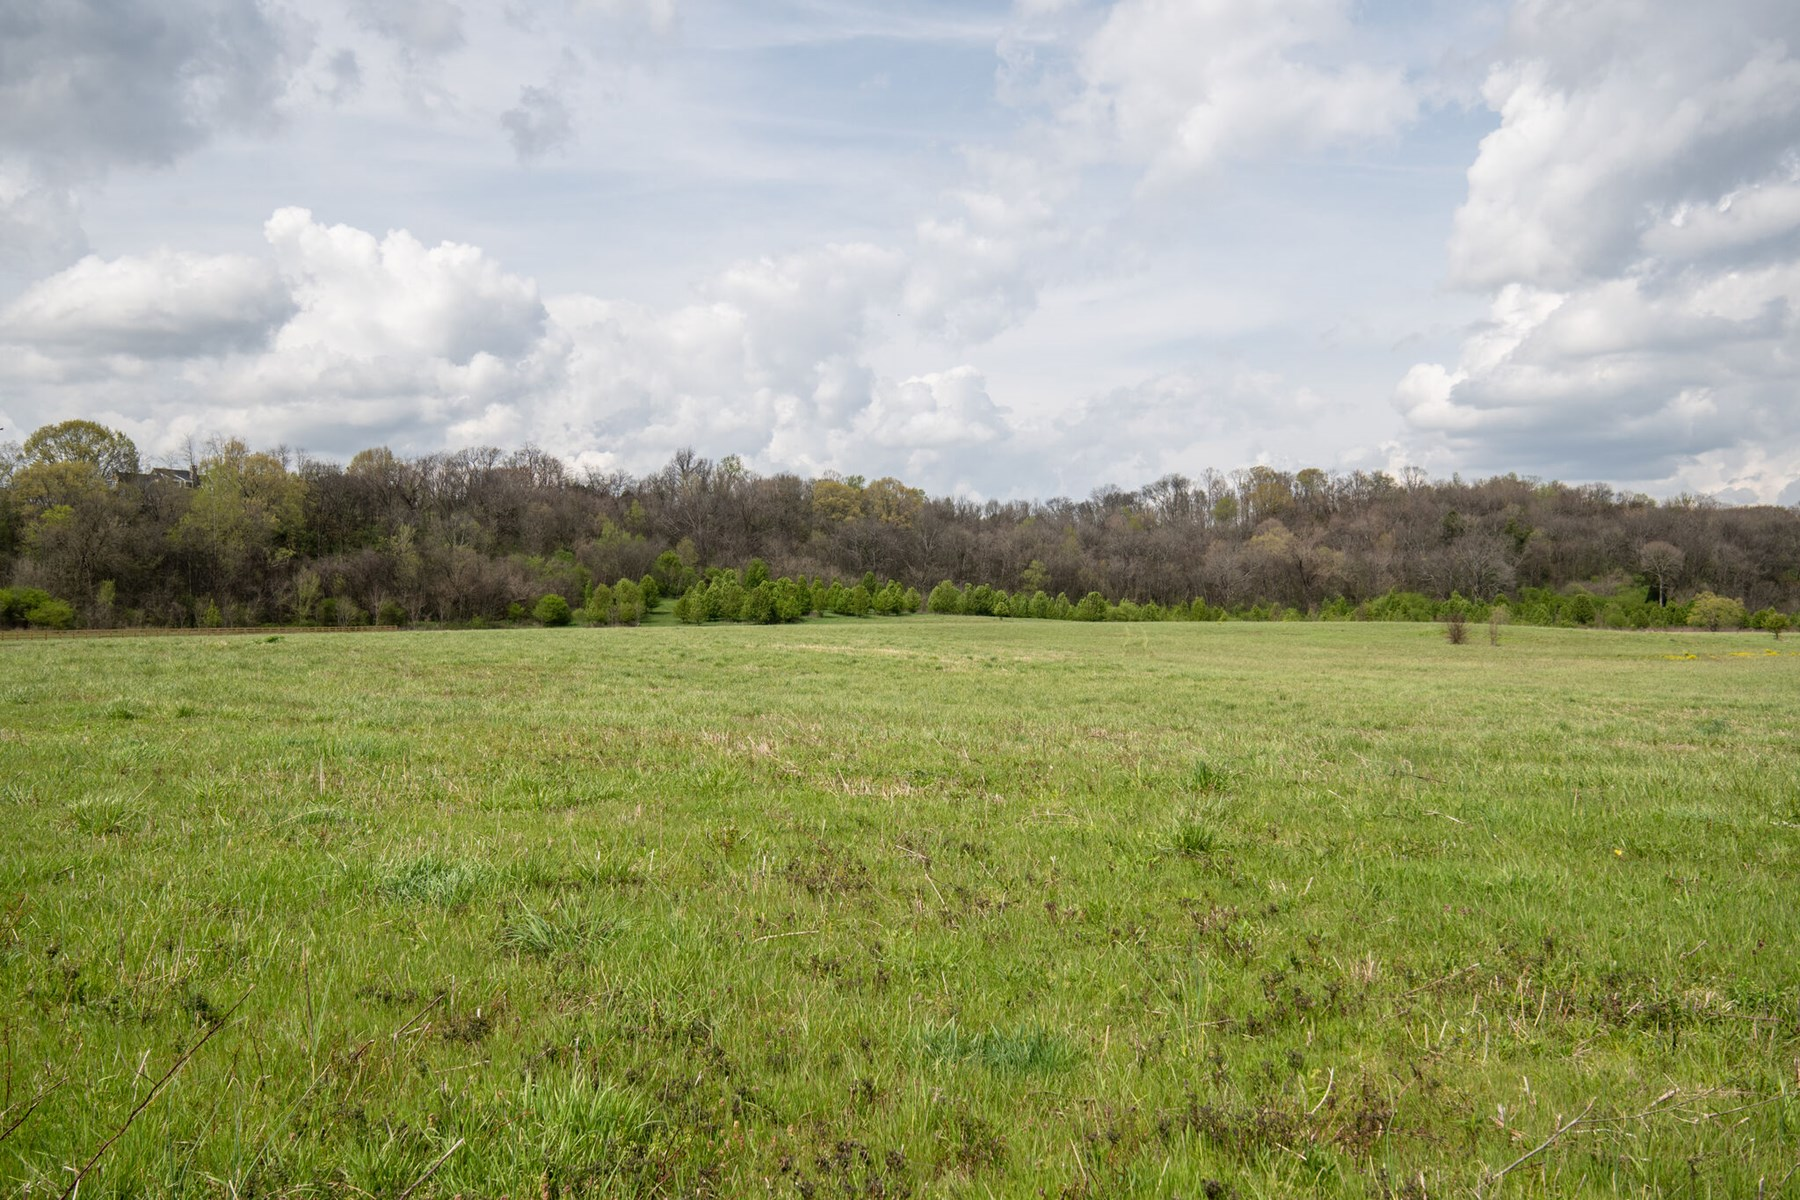 Acreage for Sale in Columbia, Maury County, Tennessee